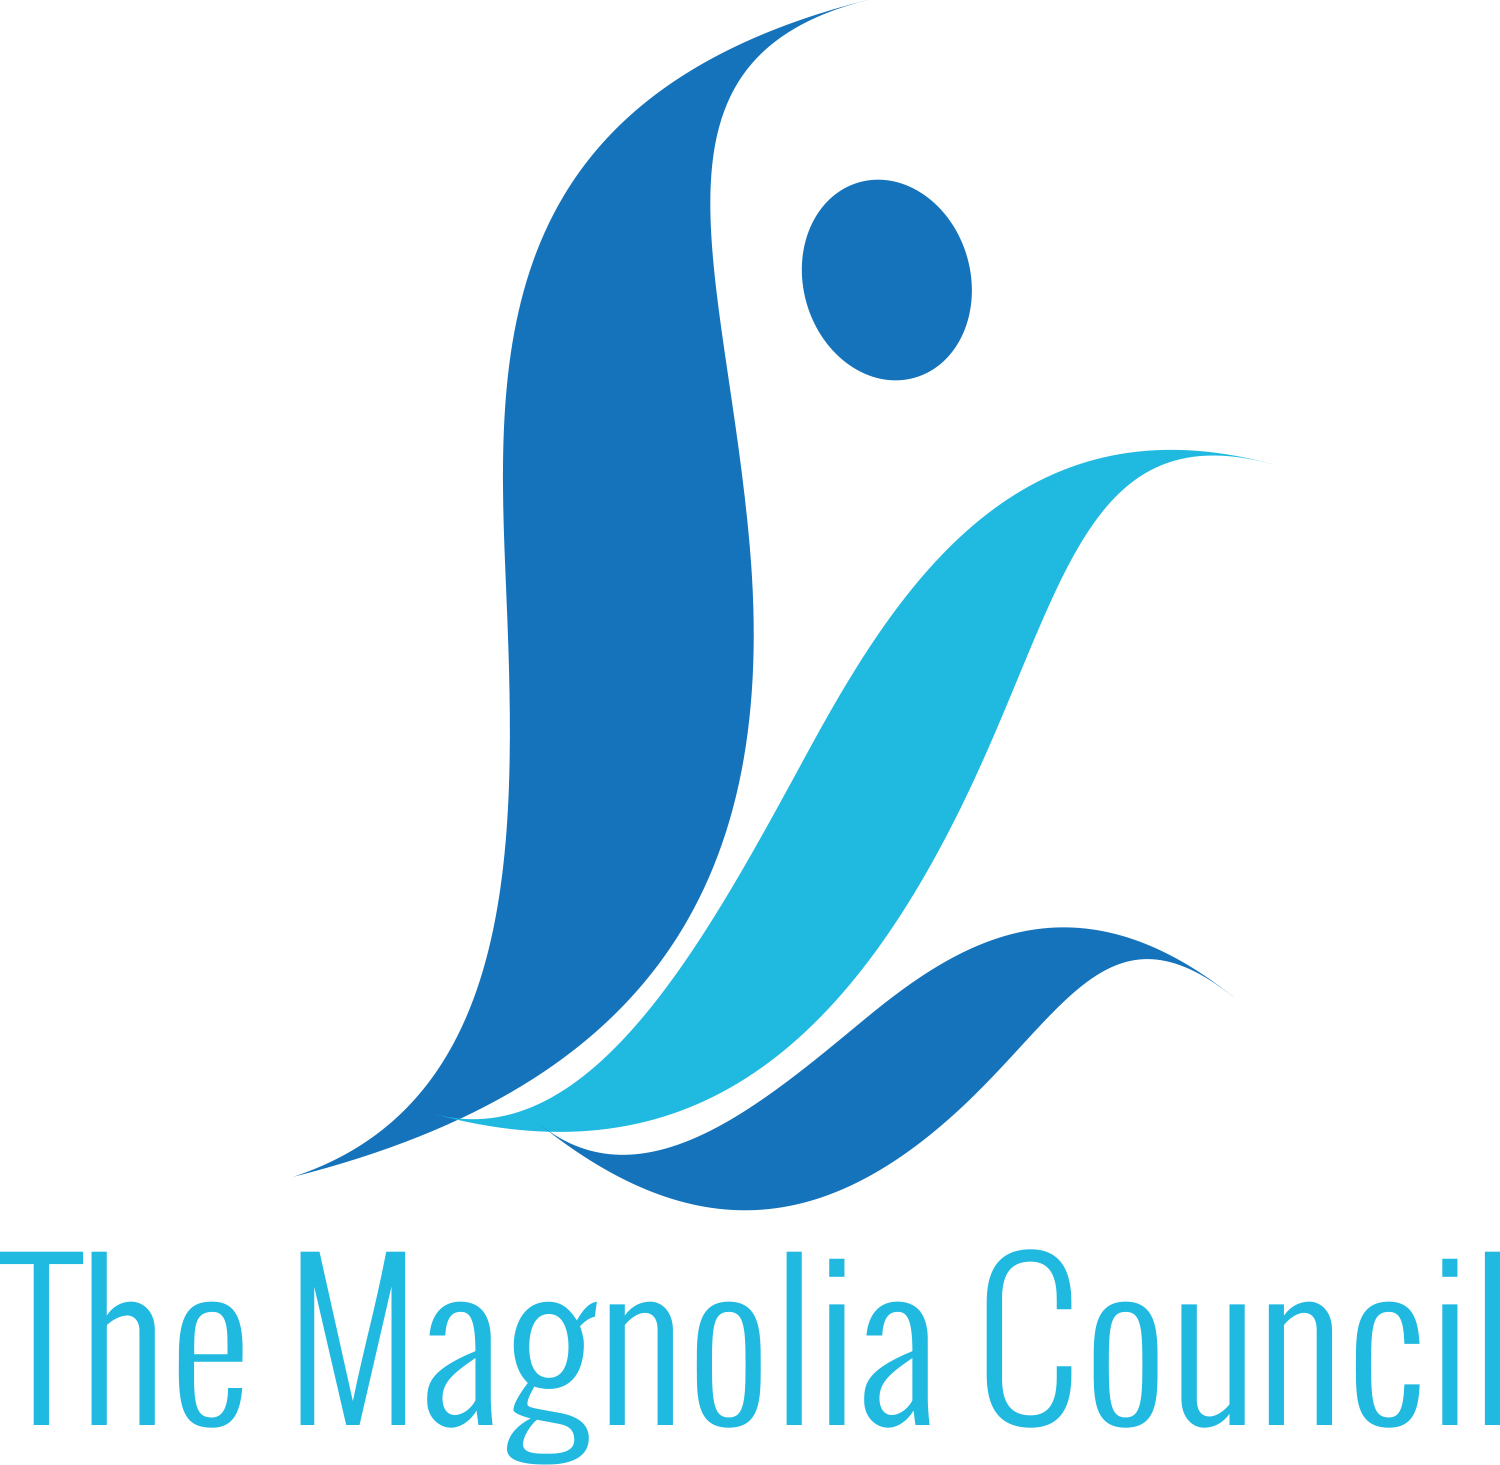 The Magnolia Council